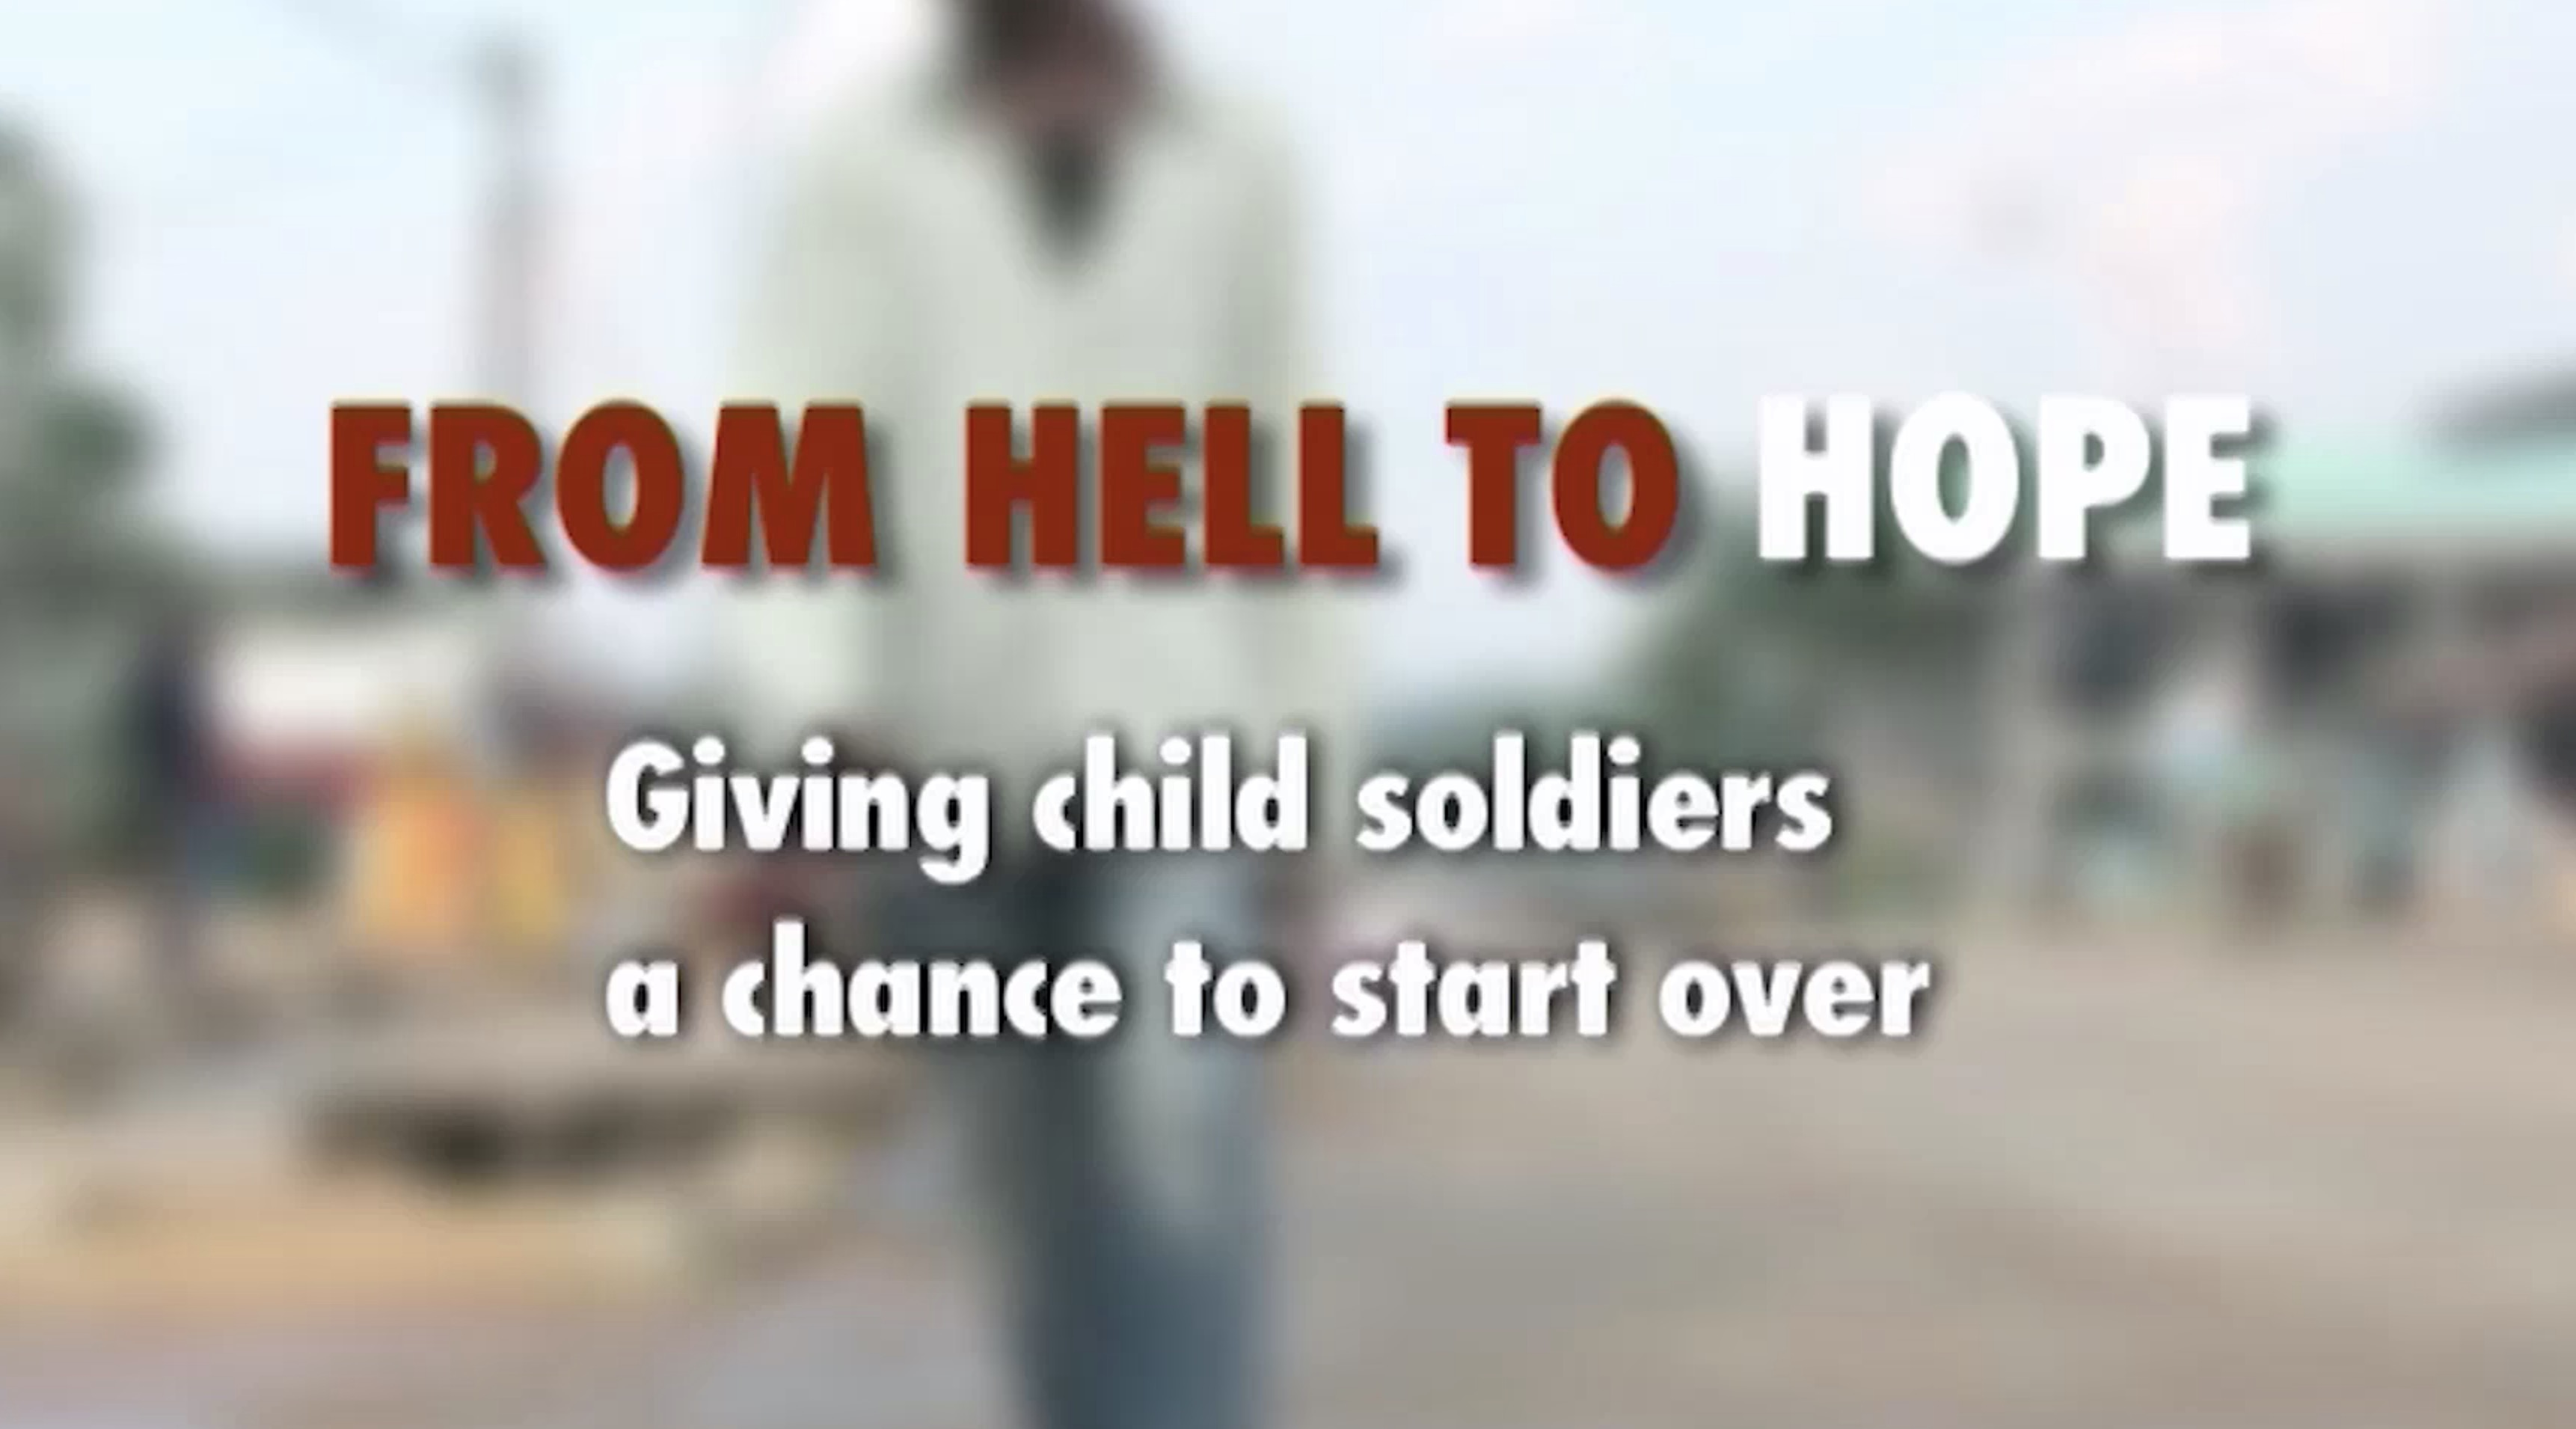 From Hell to Hope